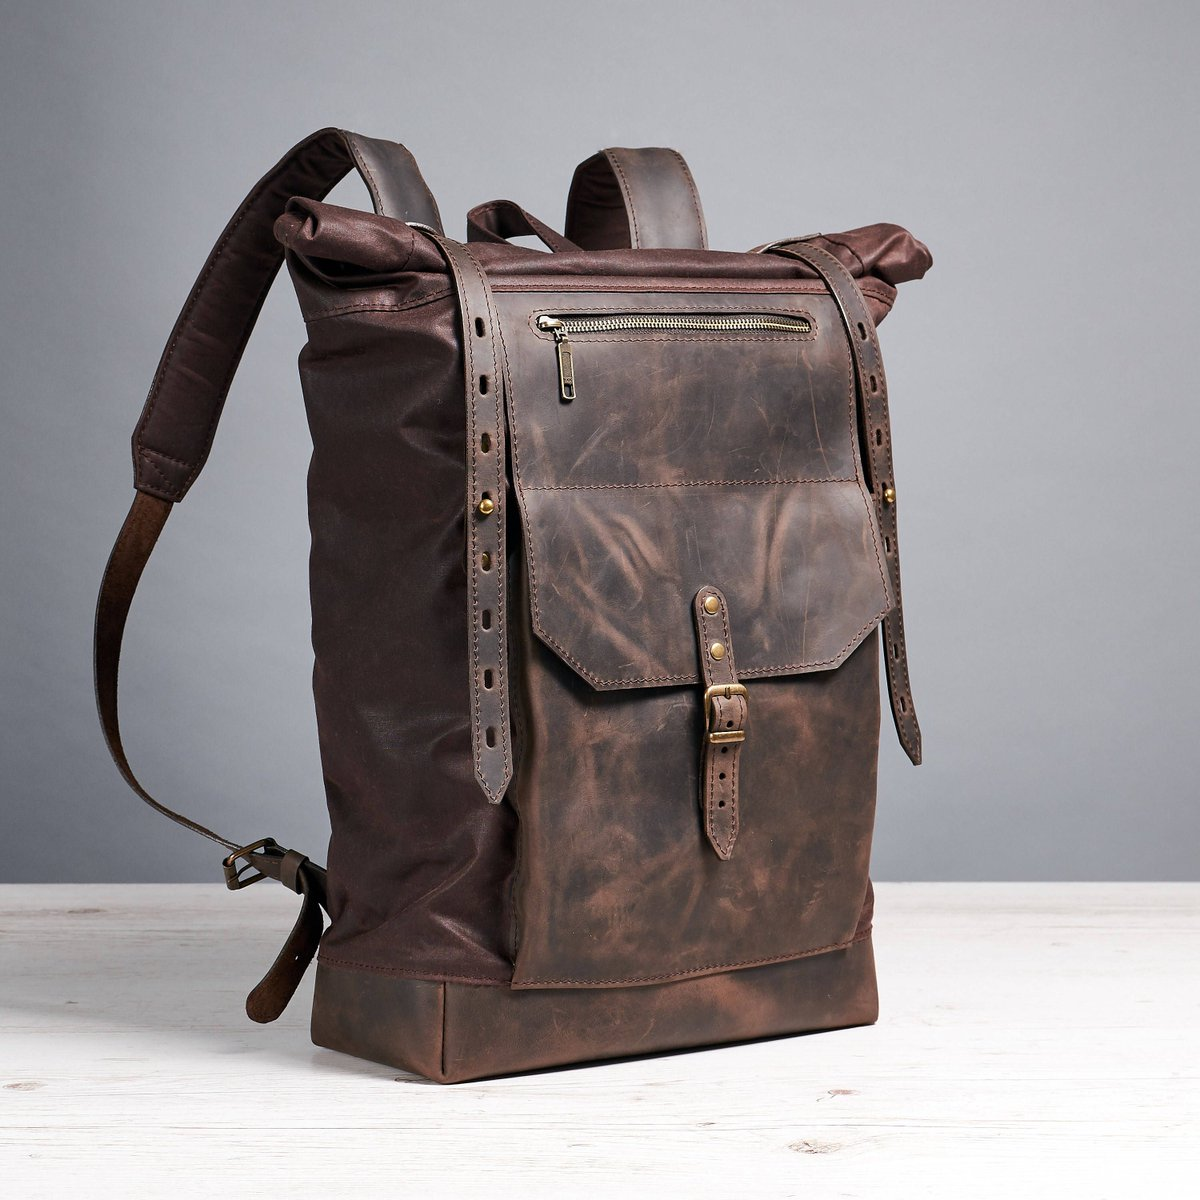 Great backpack for everyday use with high quality materials c259a6751385e